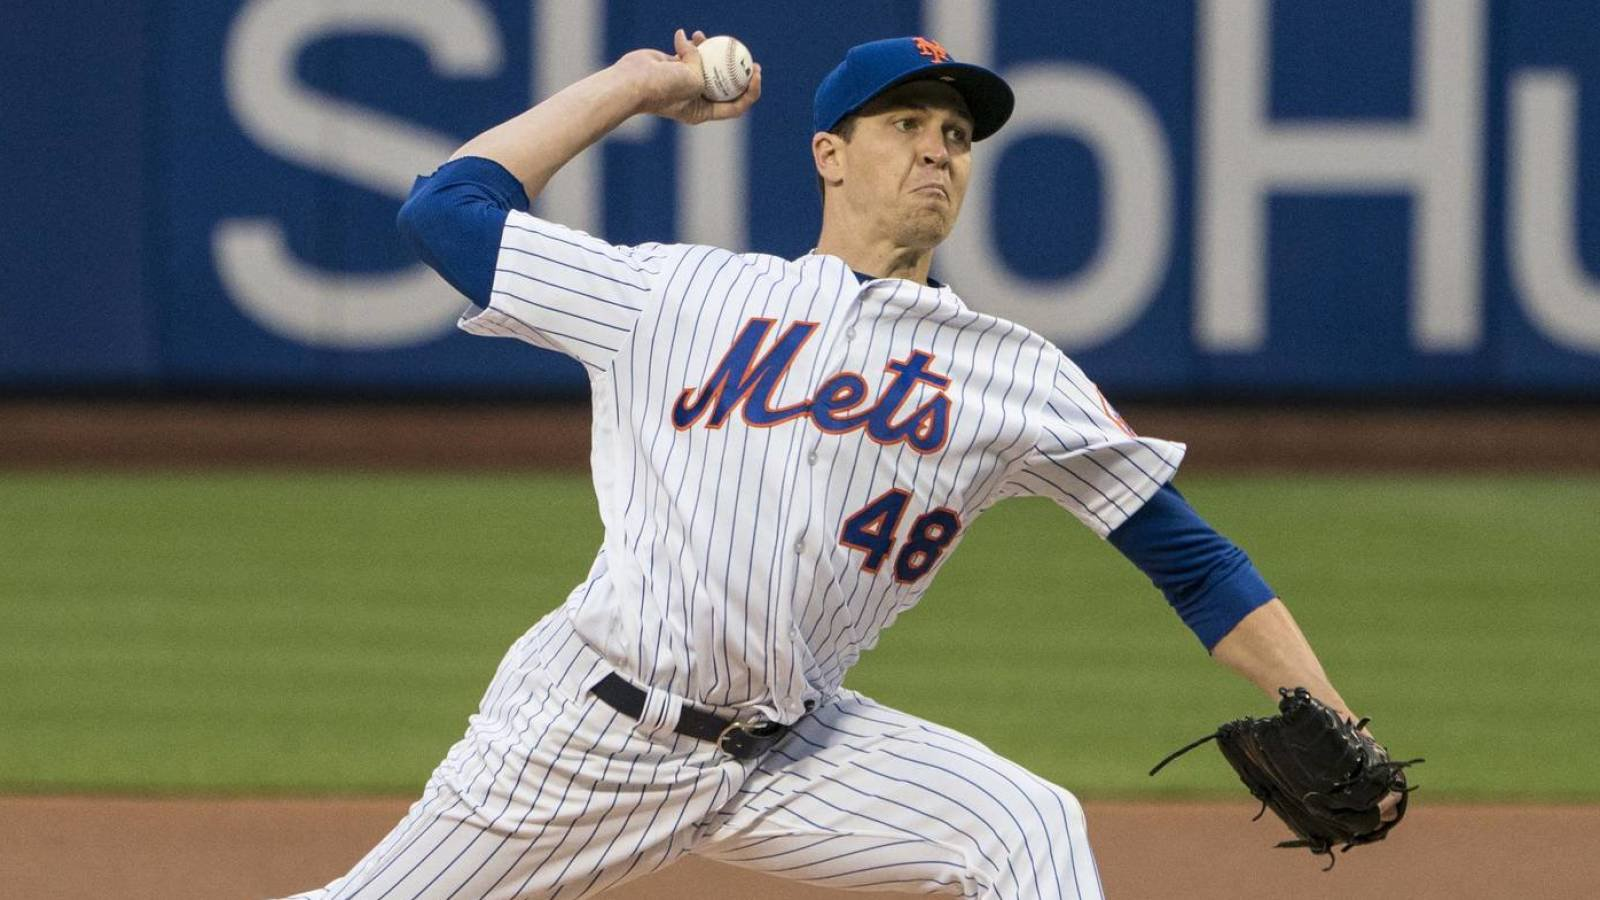 May 18, 2018; New York City, NY, USA; New York Mets pitcher Jacob DeGrom (48) delivers a pitch during the first inning of the game at Citi Field. Mandatory Credit: Gregory J. Fisher-USA TODAY Sports